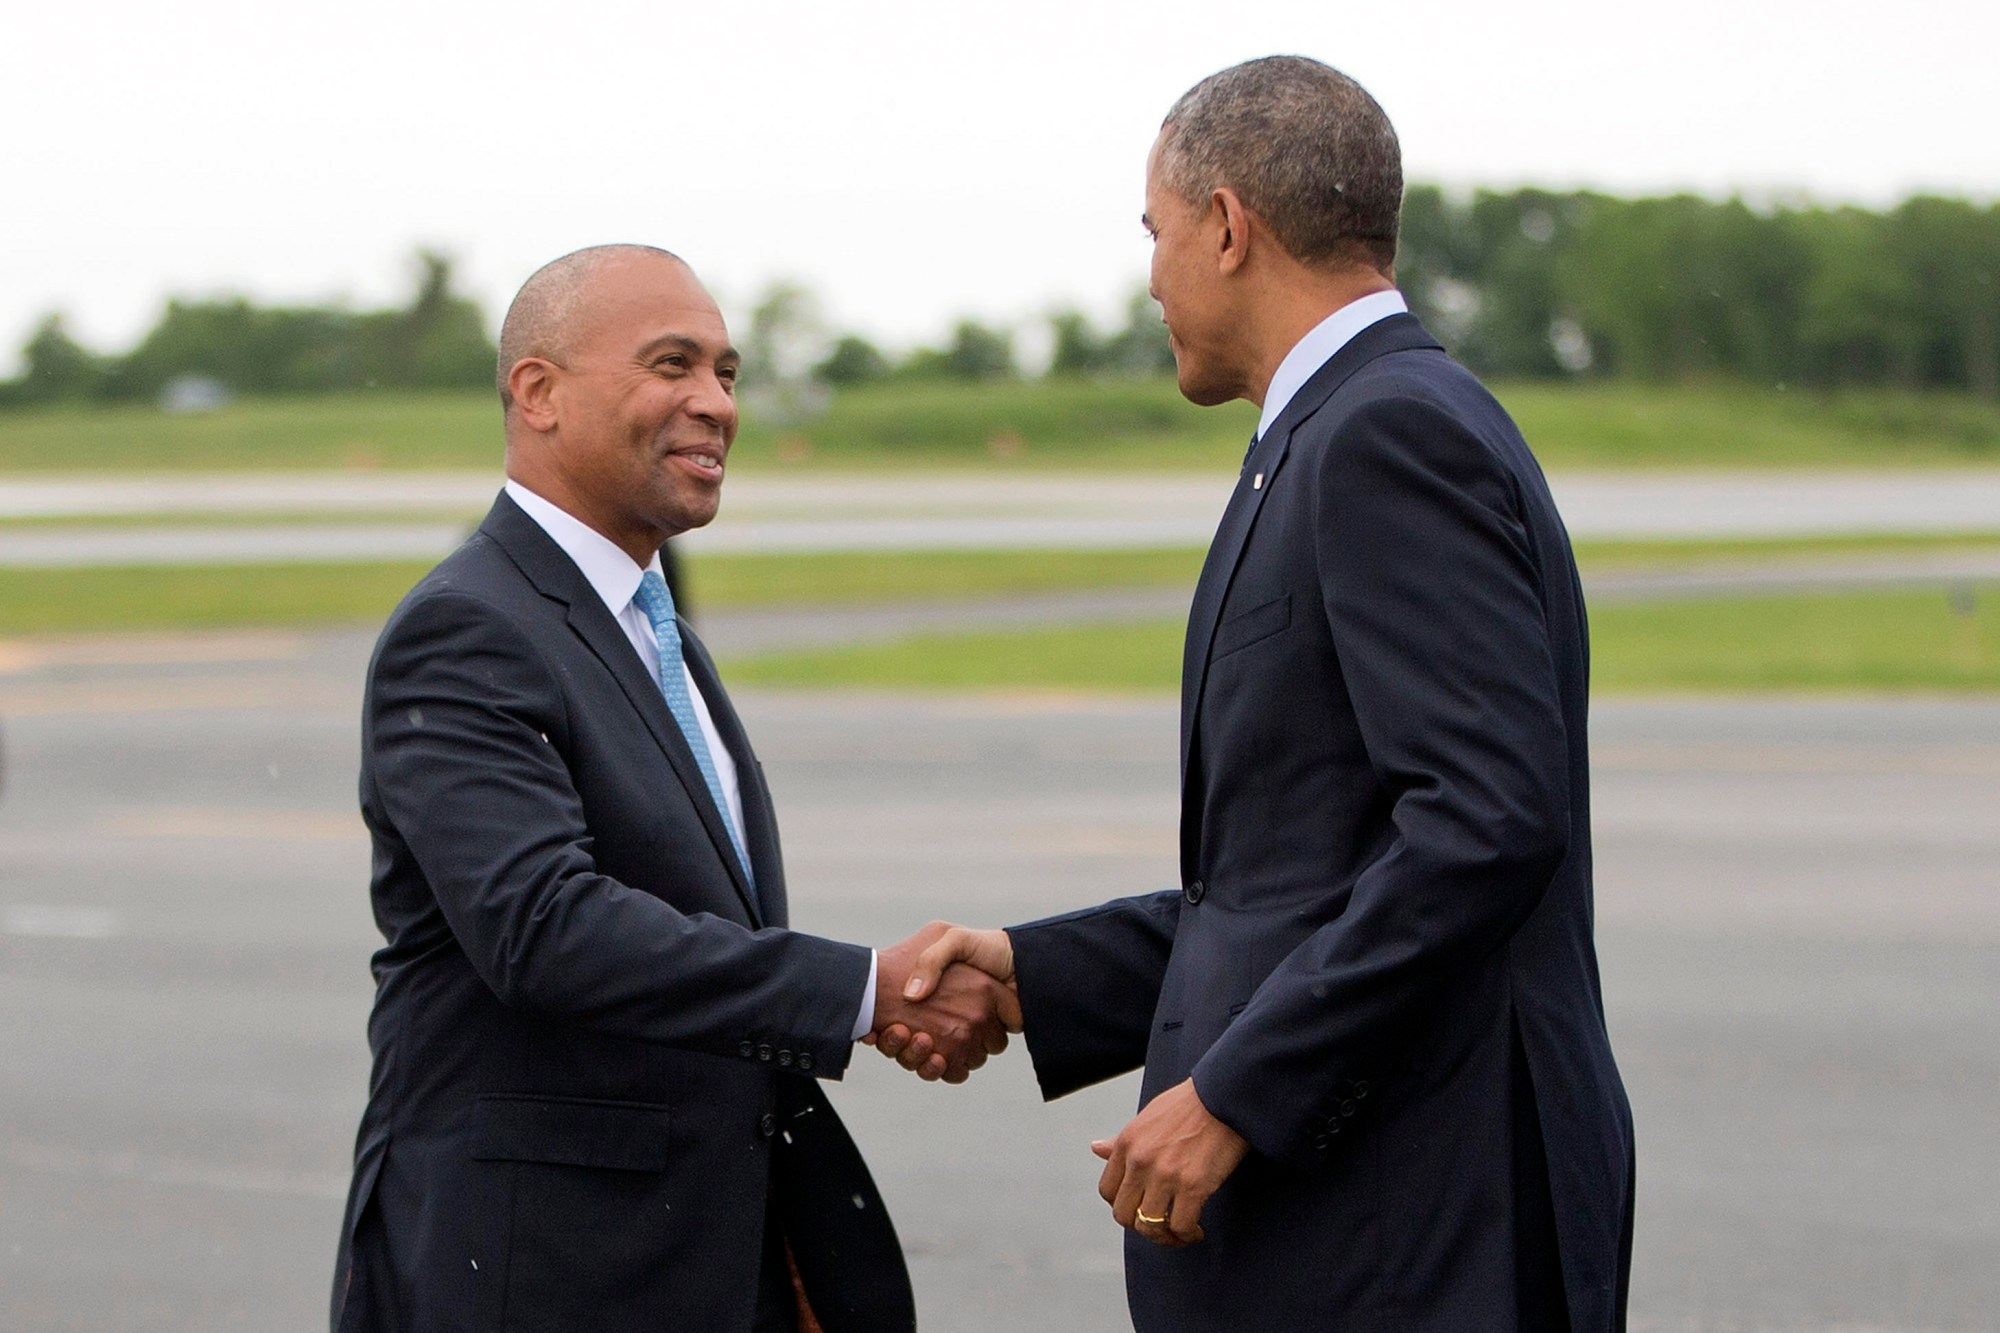 Barack Obama, Deval Patrick, Joseph Petty, Jim McGovern